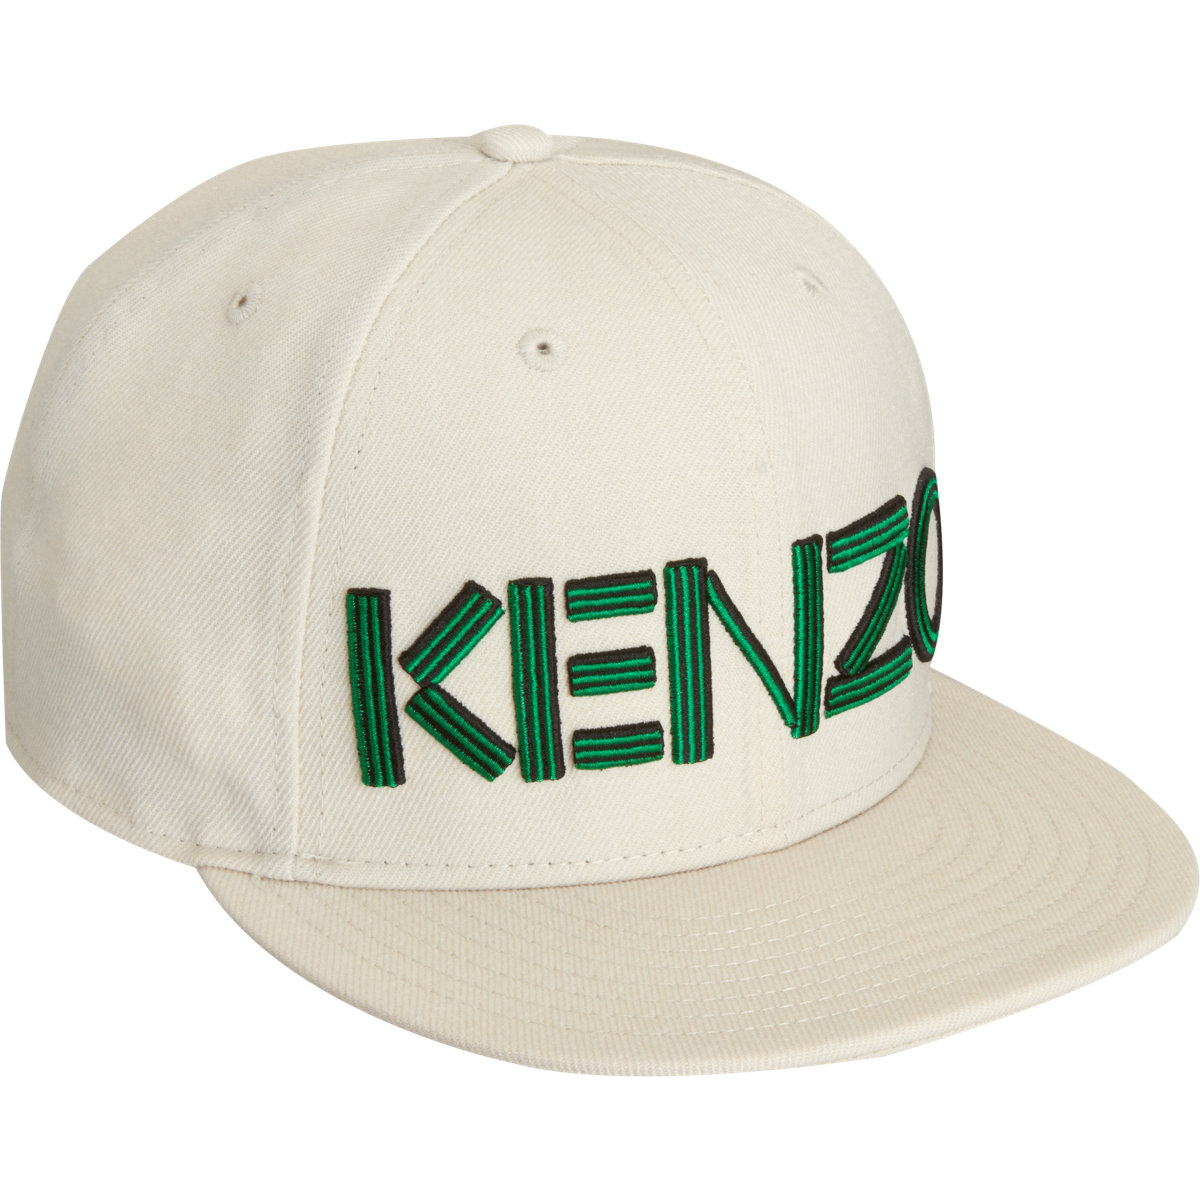 KENZO Embroidered Hat in Green for Men - Lyst 1eb75b036f9